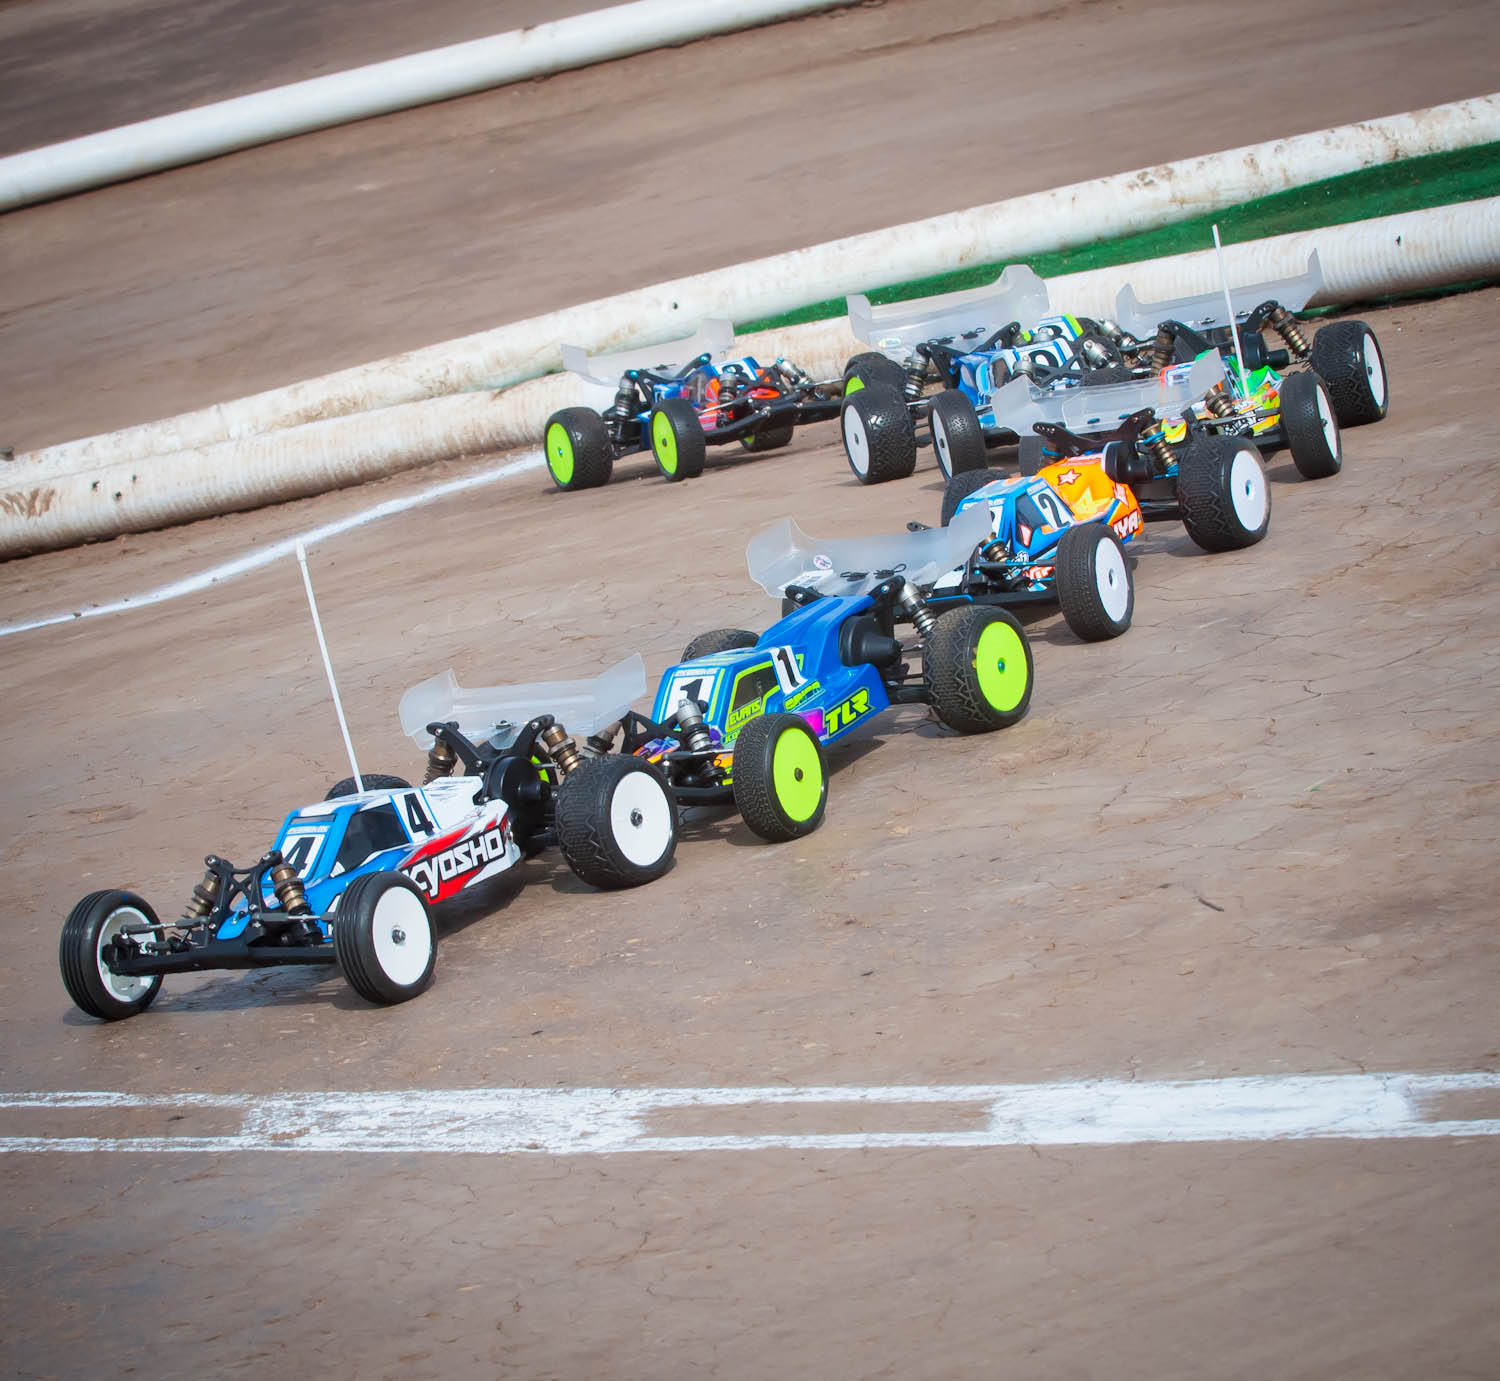 Ryan Cavalieri Wins Round Four at IFMAR Worlds; Mother Nature Has Other Plans